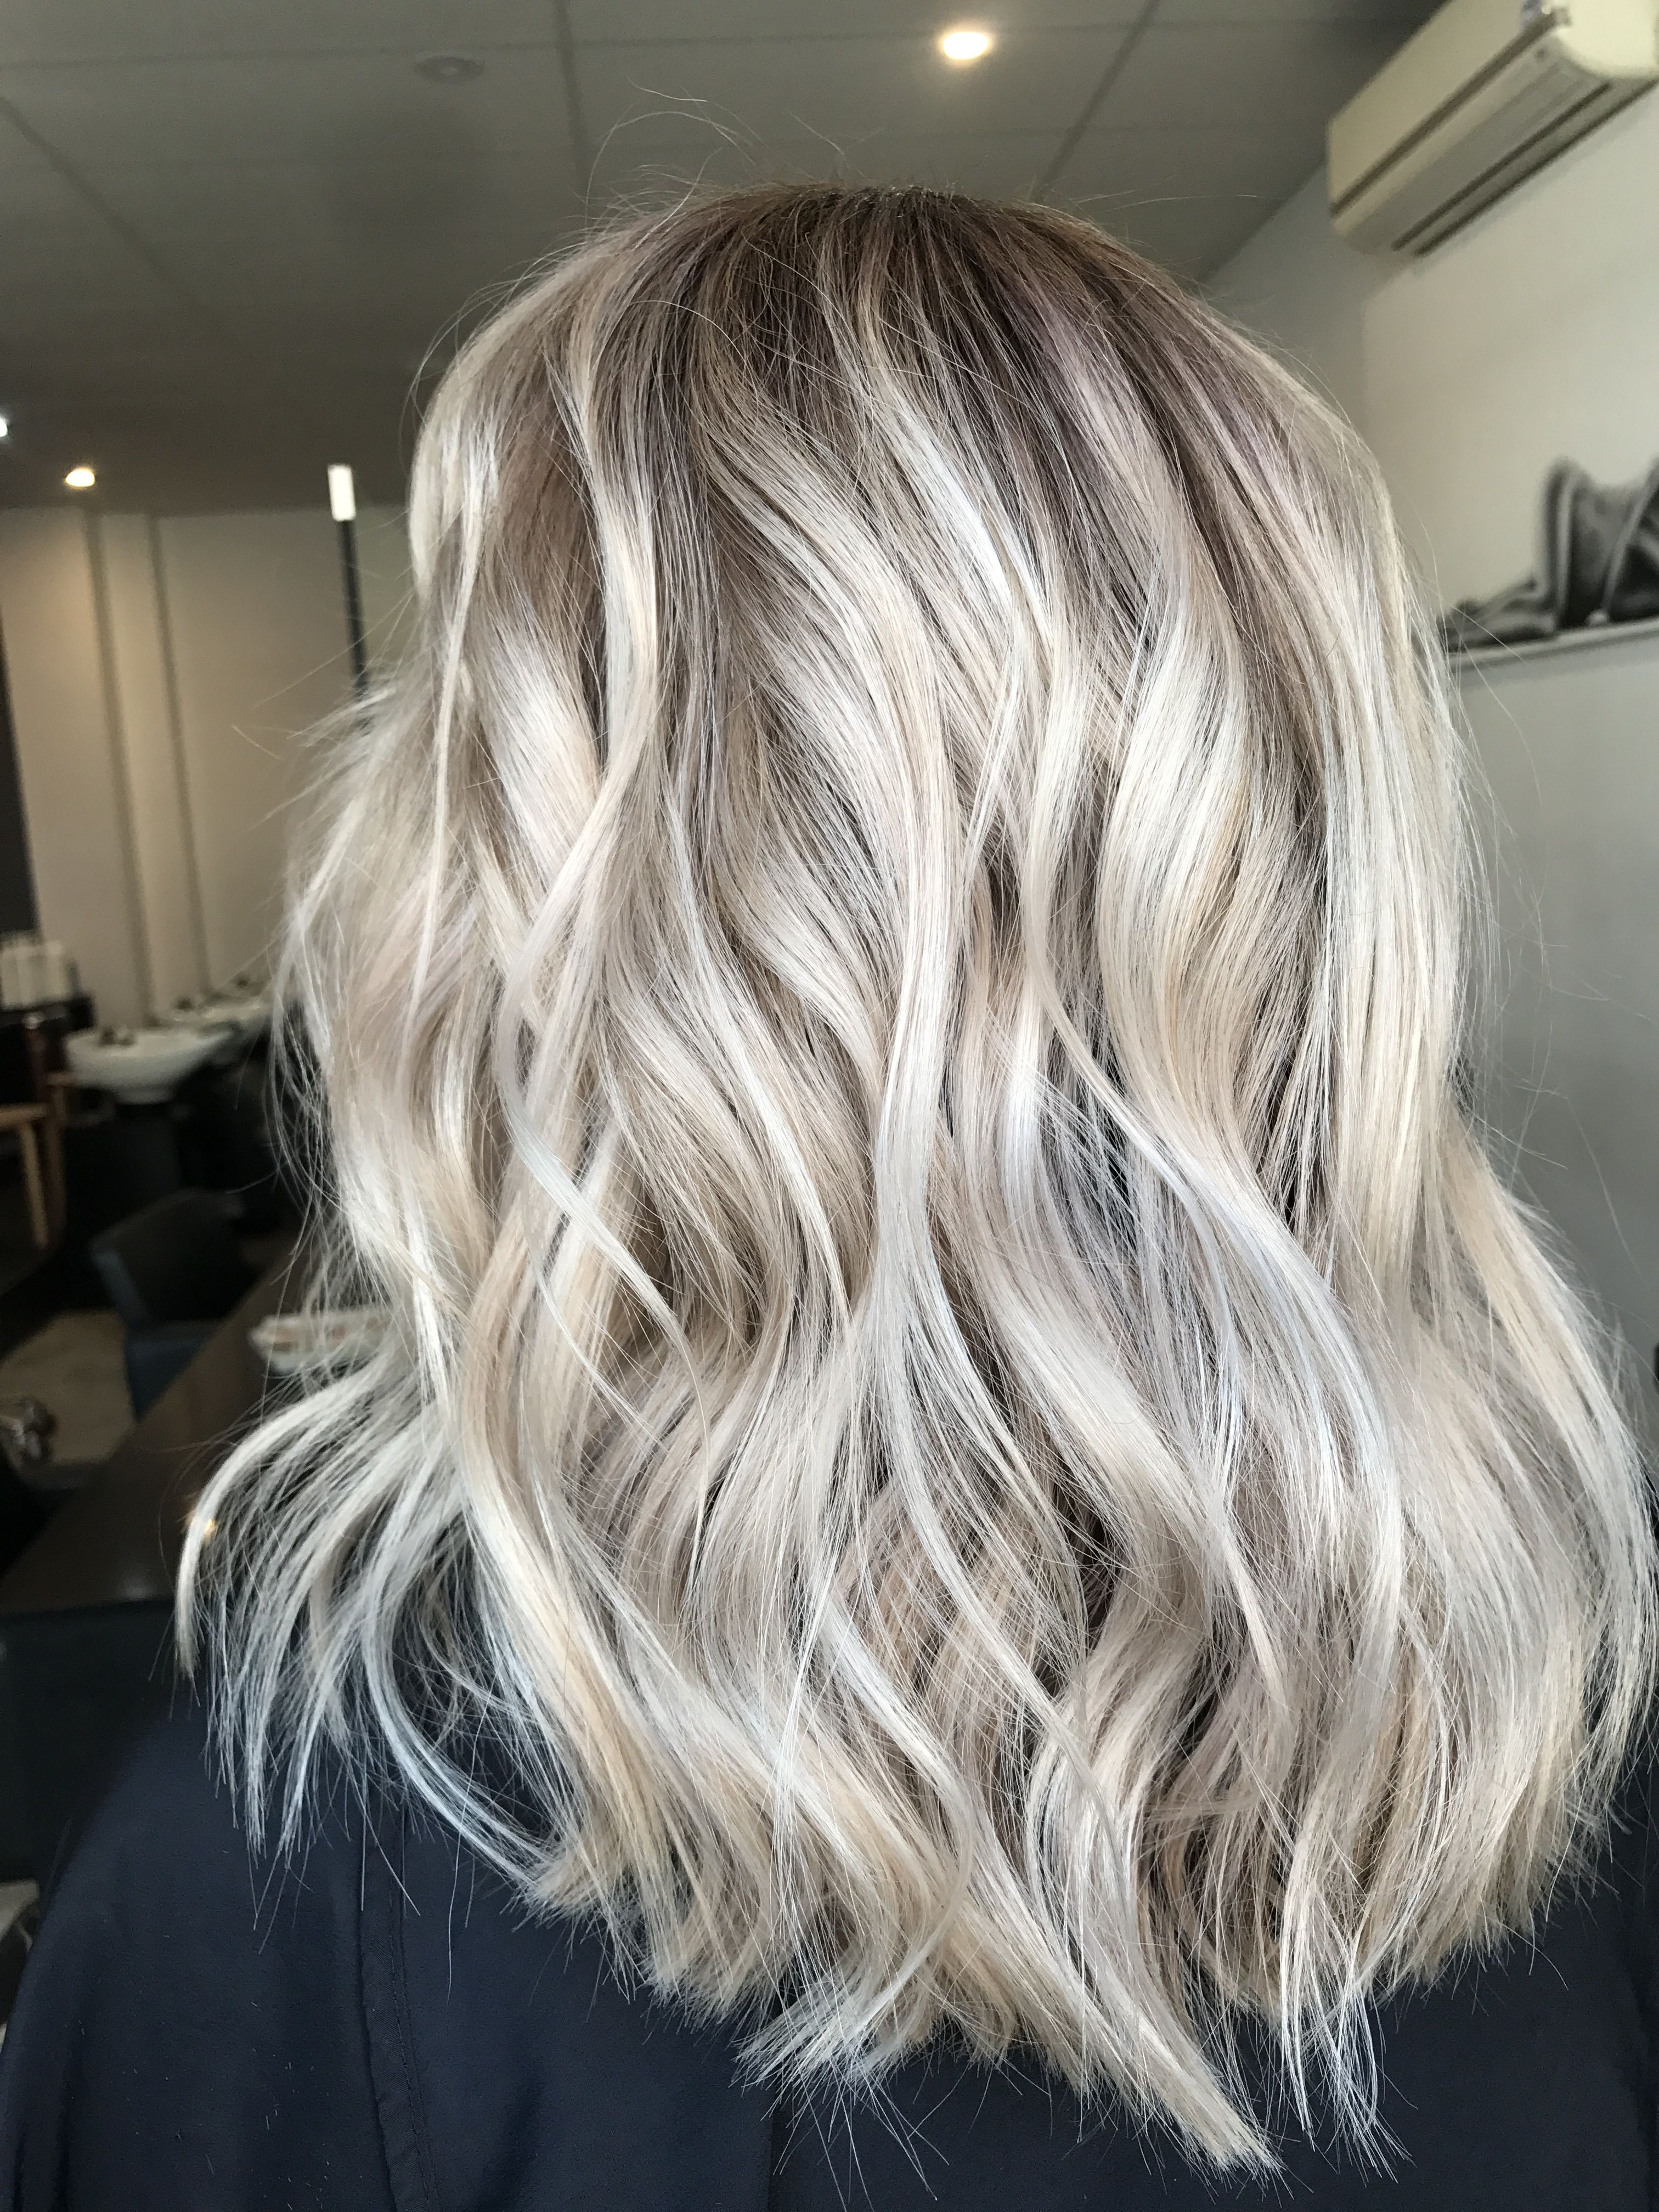 Pin by allana tachauer on hair ium loving pinterest balayage